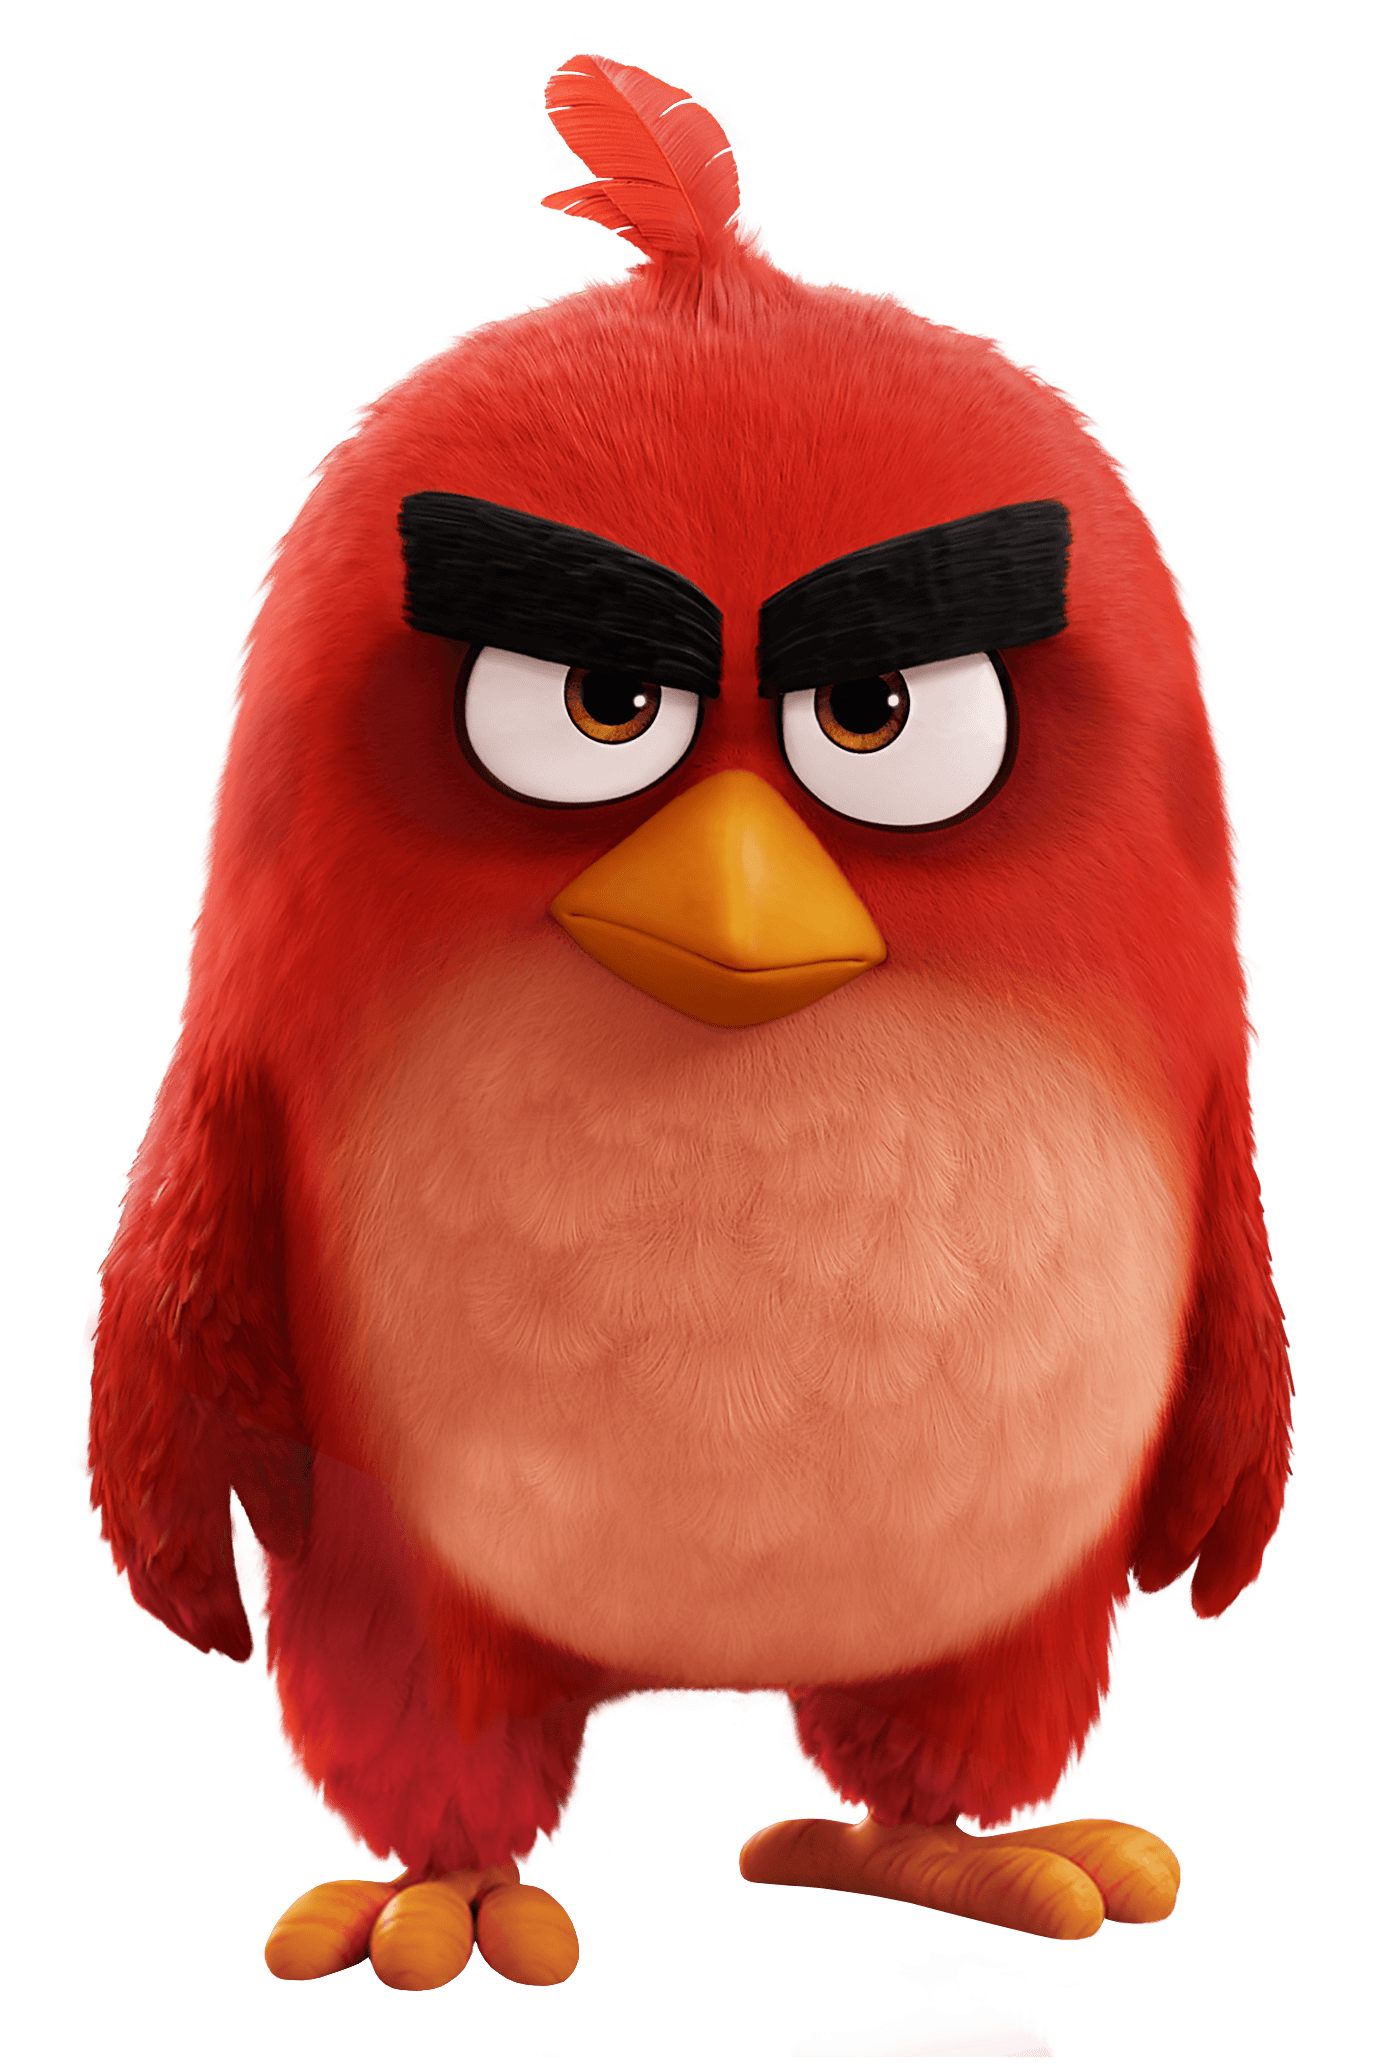 Angry Birds Movie Red Bird - Angry Birds, Transparent background PNG HD thumbnail